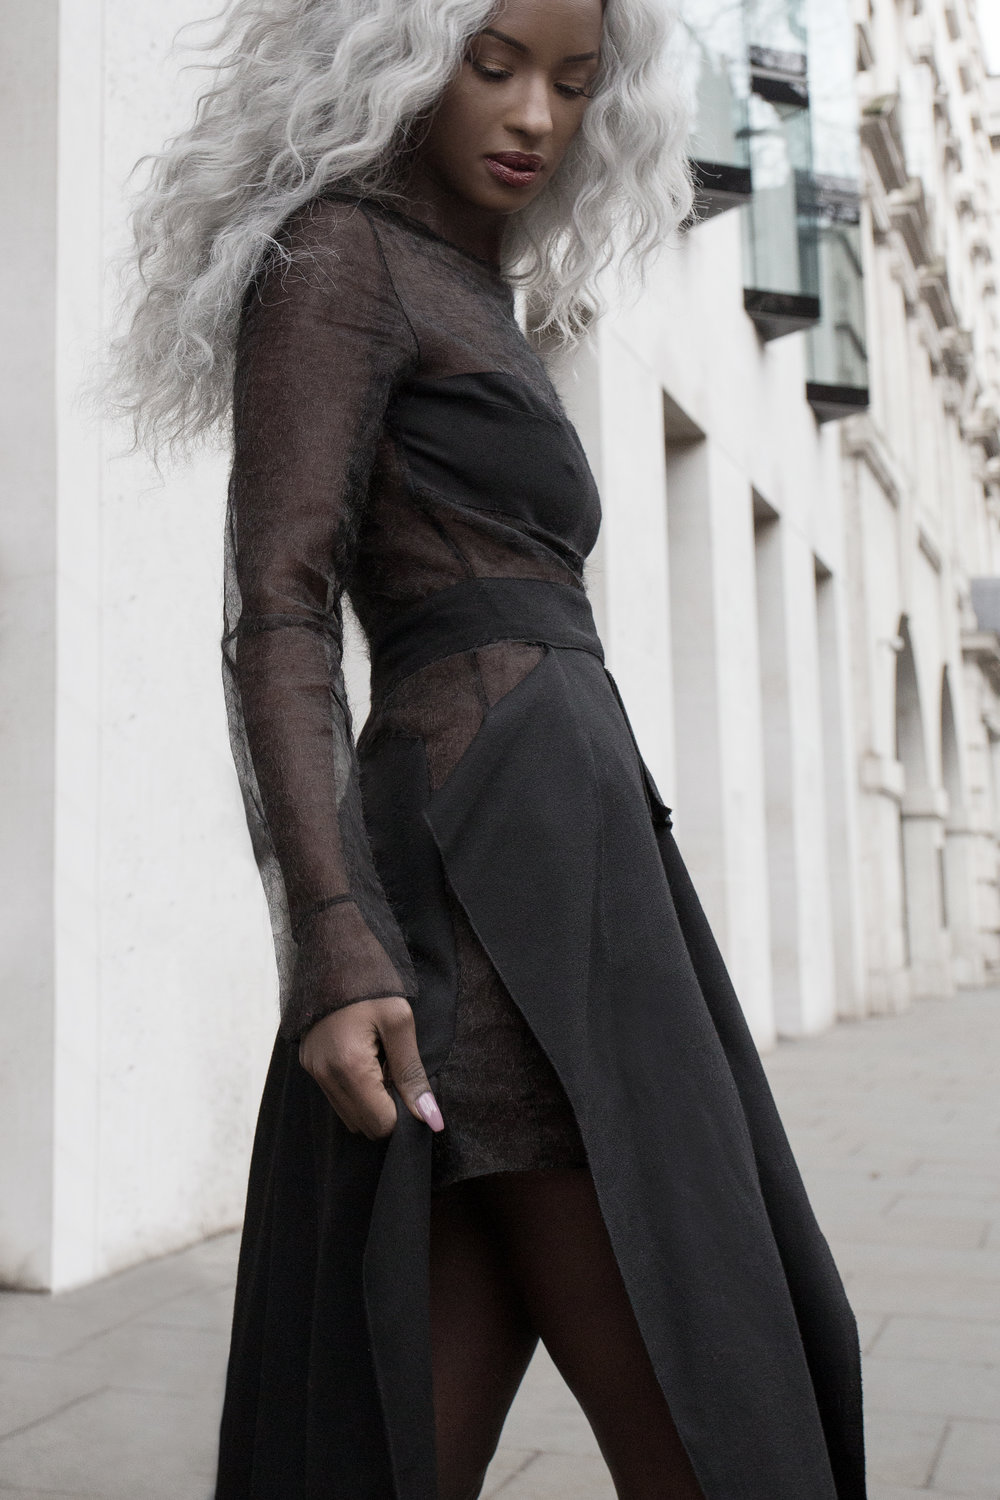 Sarah Mulindwa By Stoyanov & Jones wearing The 7962